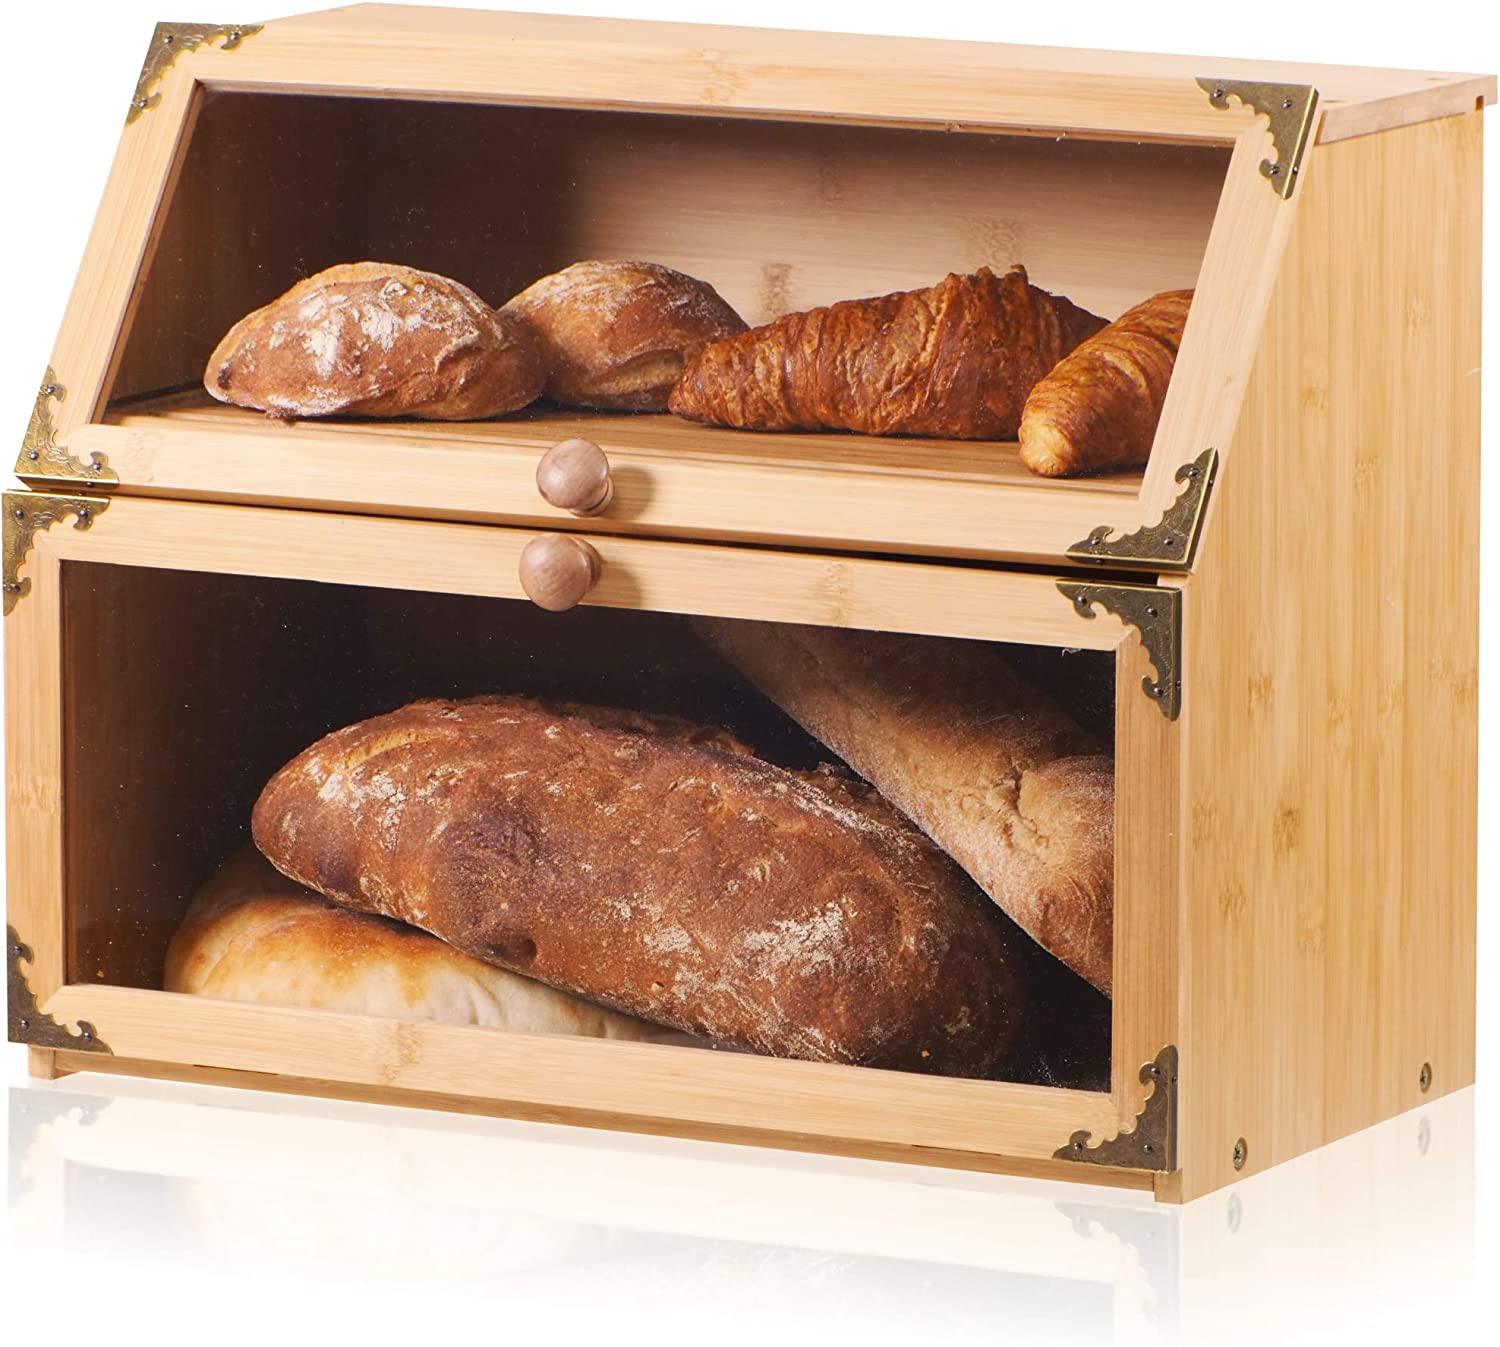 Bagels Double Layer Bamboo Bread Box for Kitchen Countertop Extra Large with Cutting Board Self-Assembly Buns Bread Storage Container with Clear Windows Holds Several Loaves of Homemade Bread